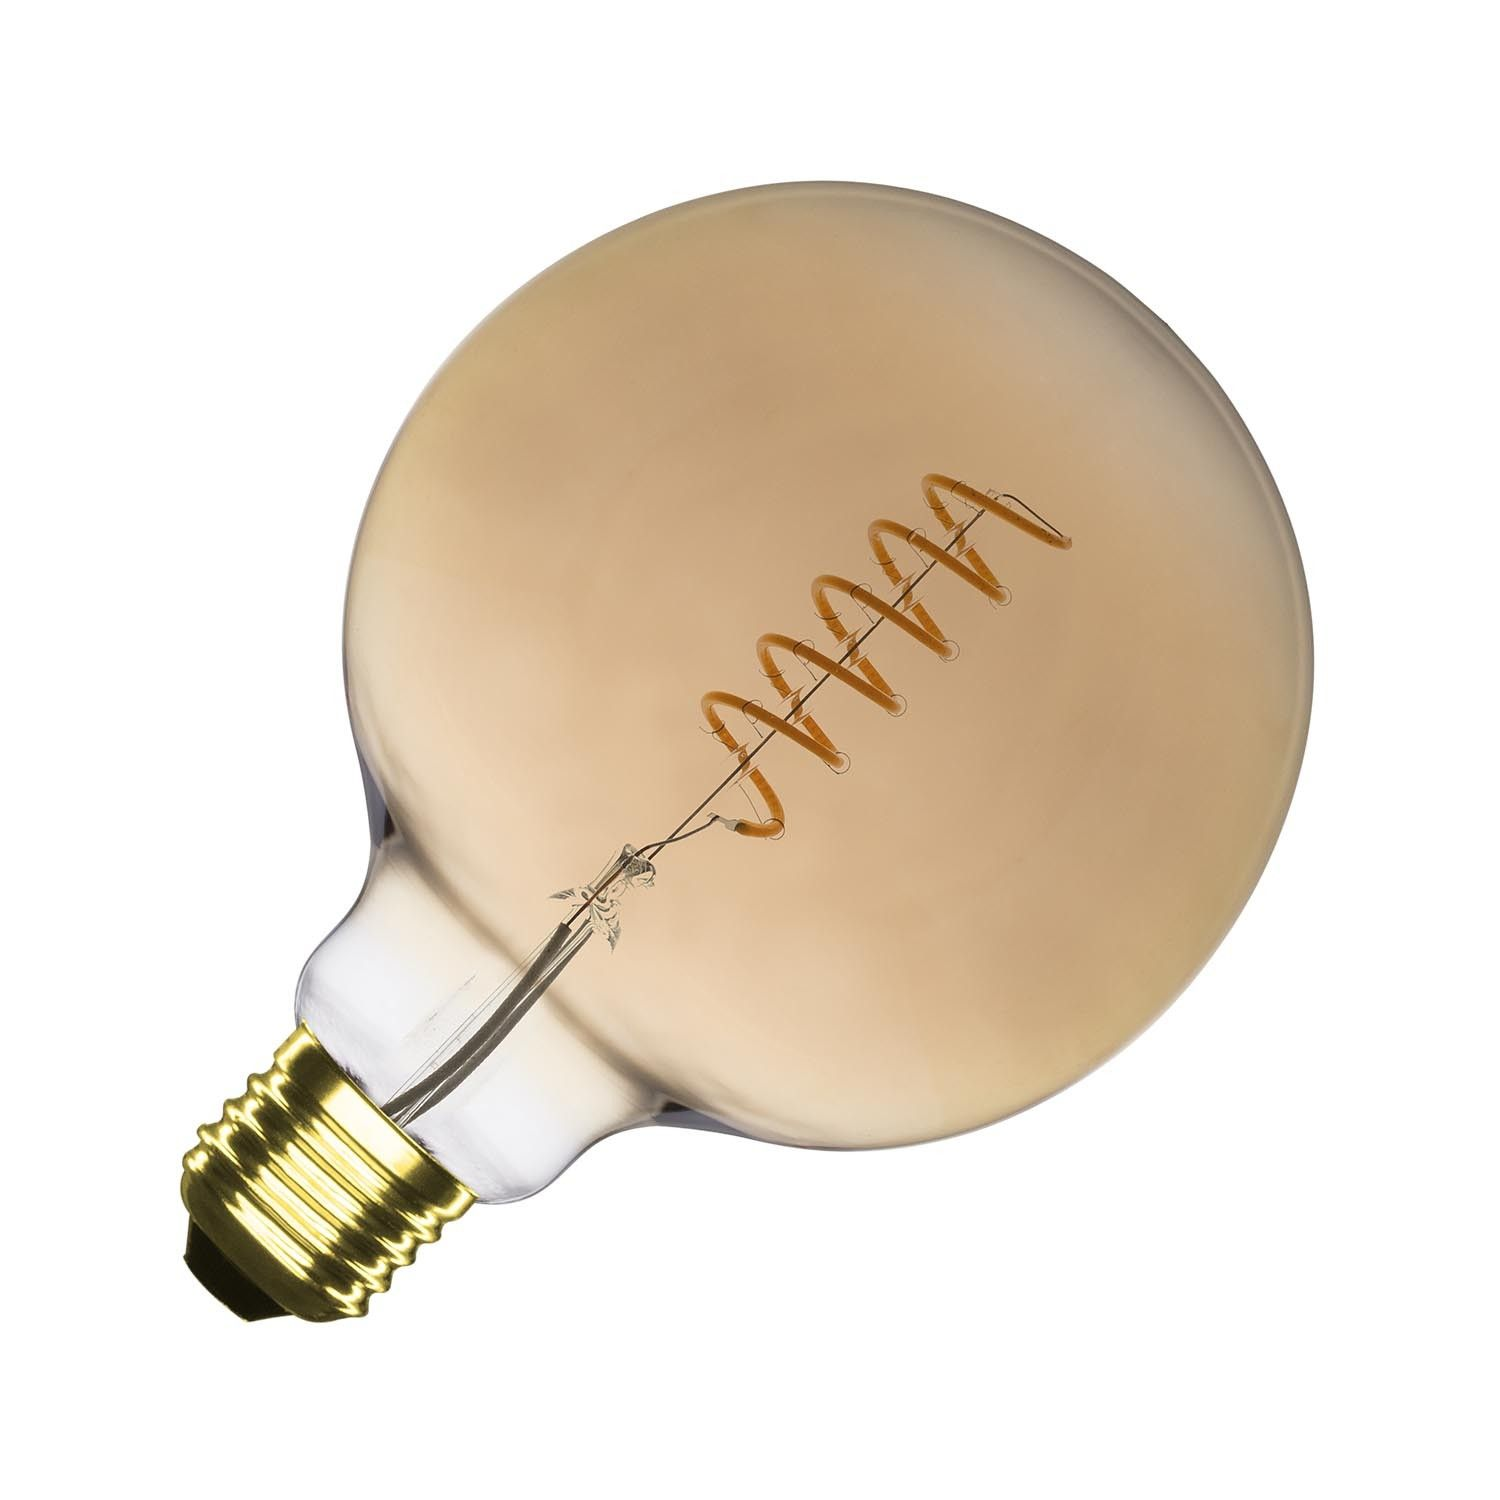 G125 E27 4w Supreme Spiral Gold Filament Led Bulb Dimmable